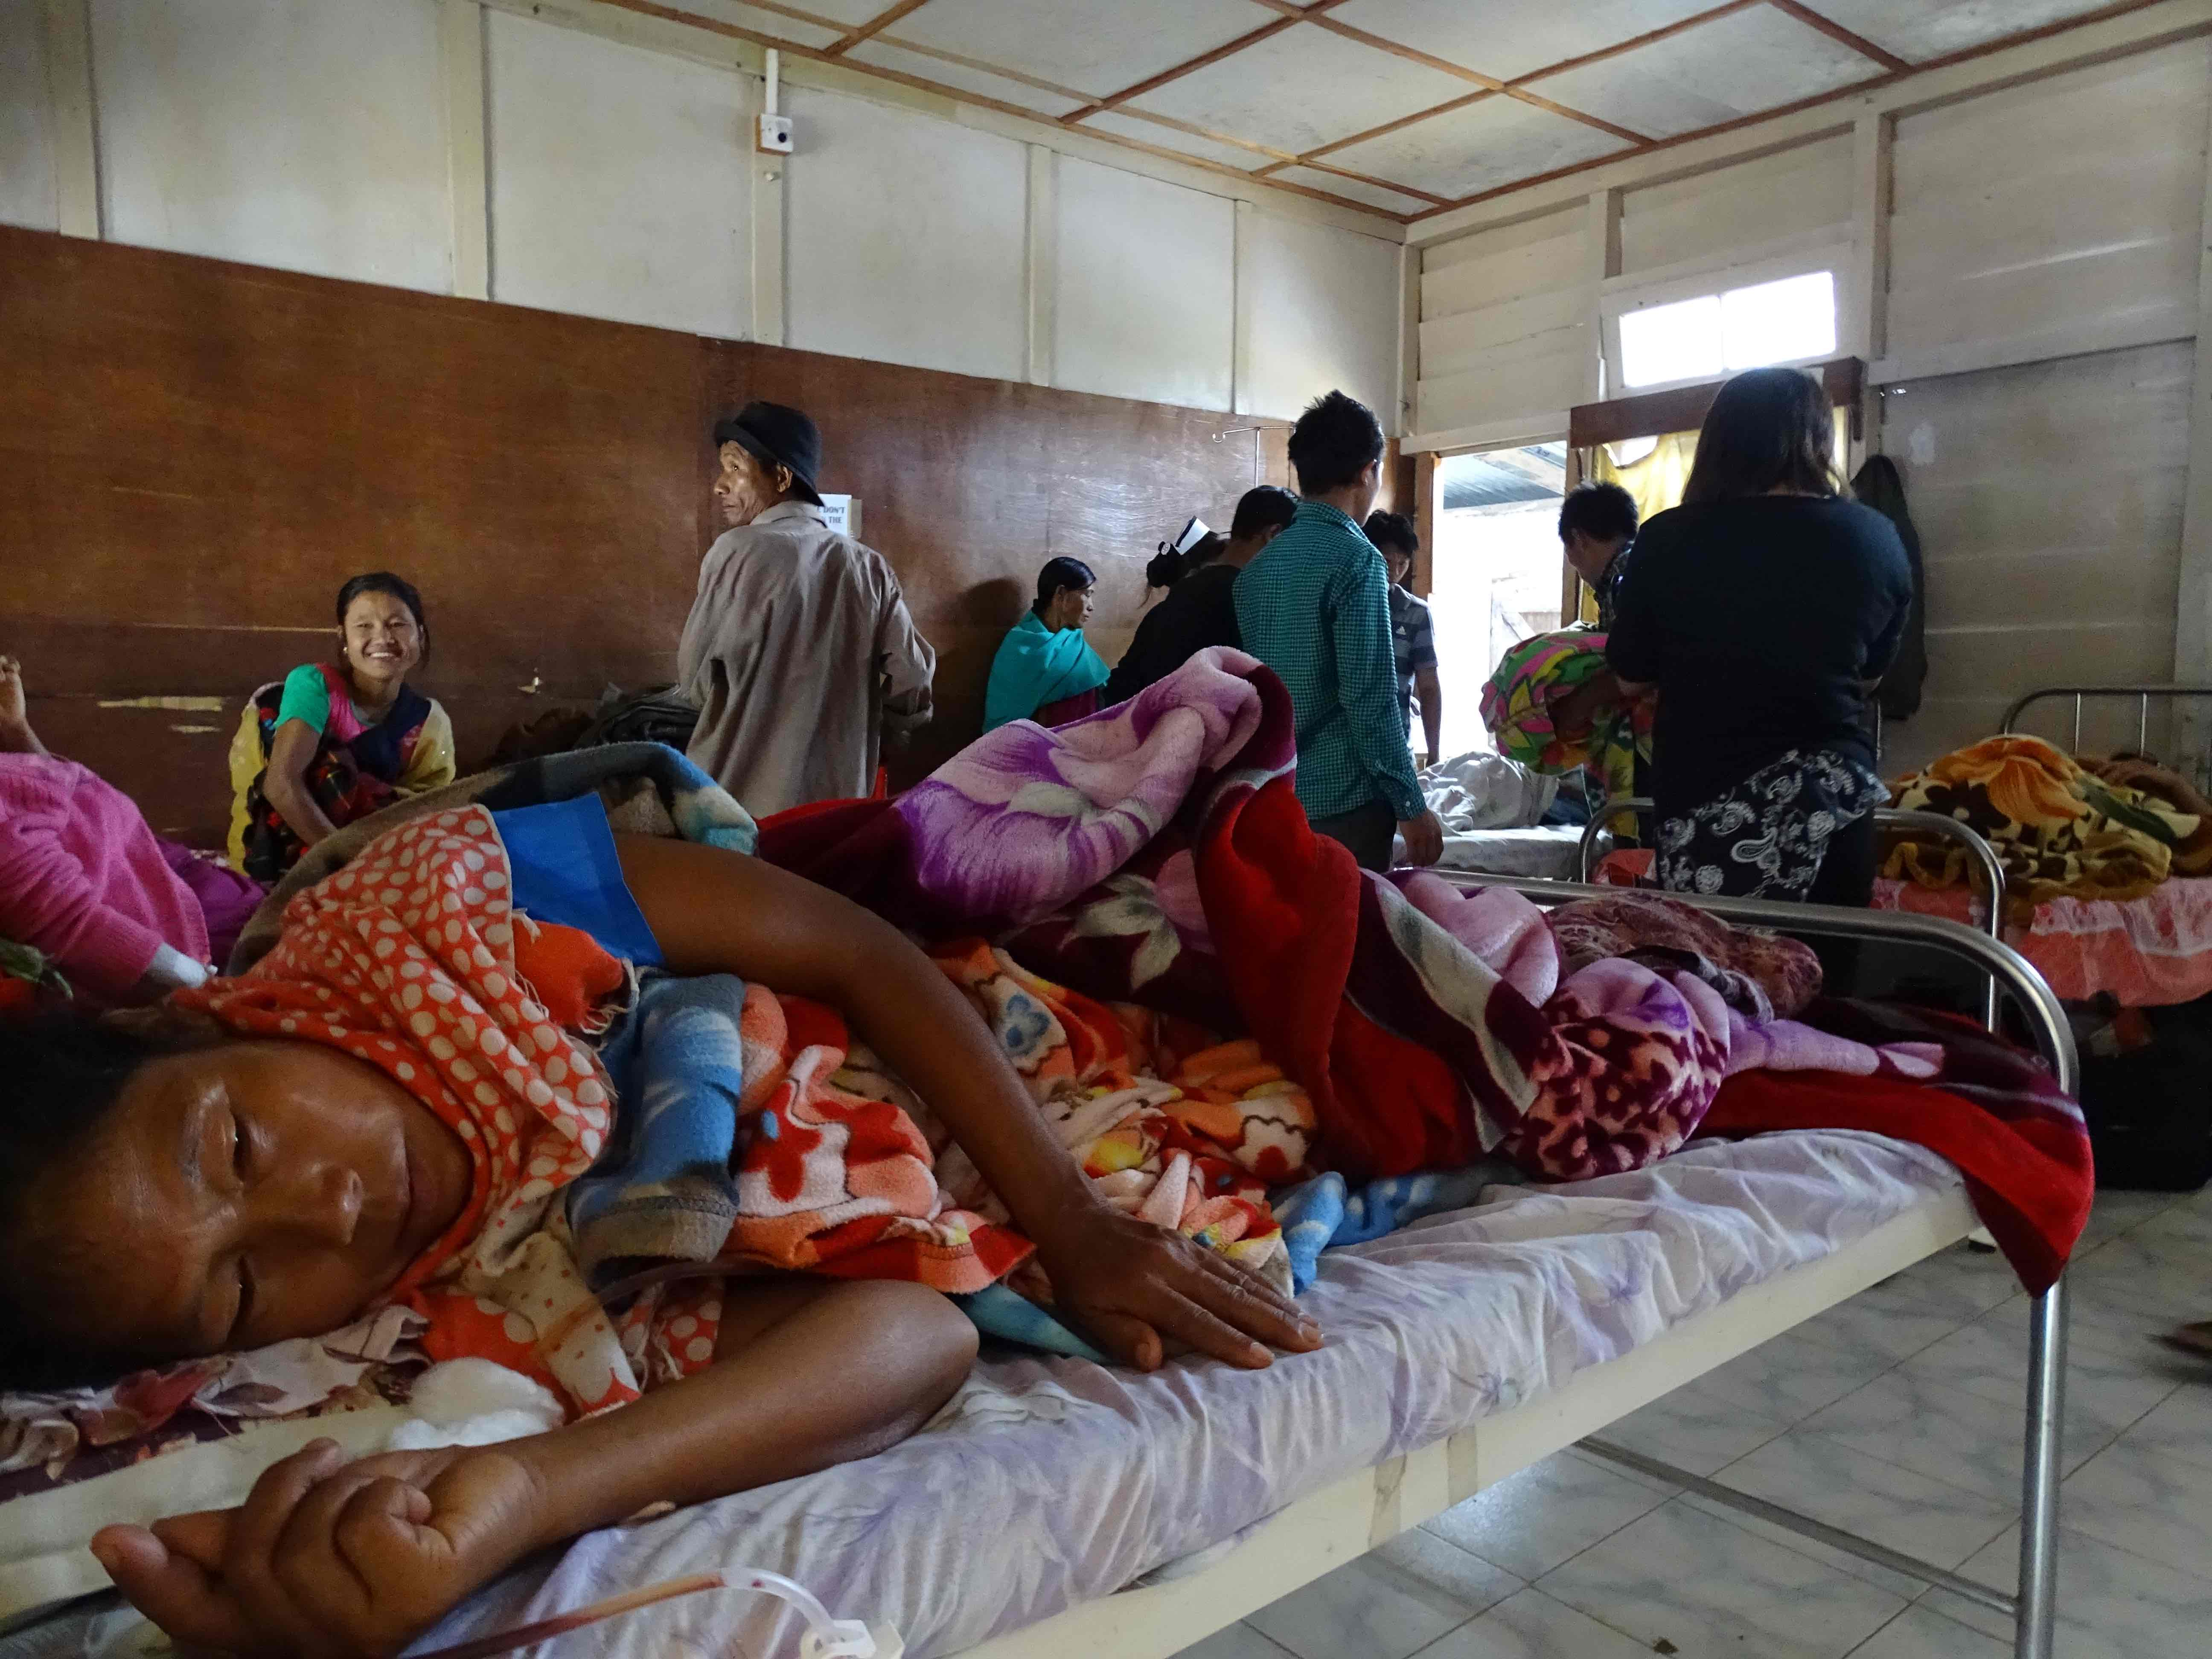 In Nagaland, Missing Health Services Are a Matter of Life and Death